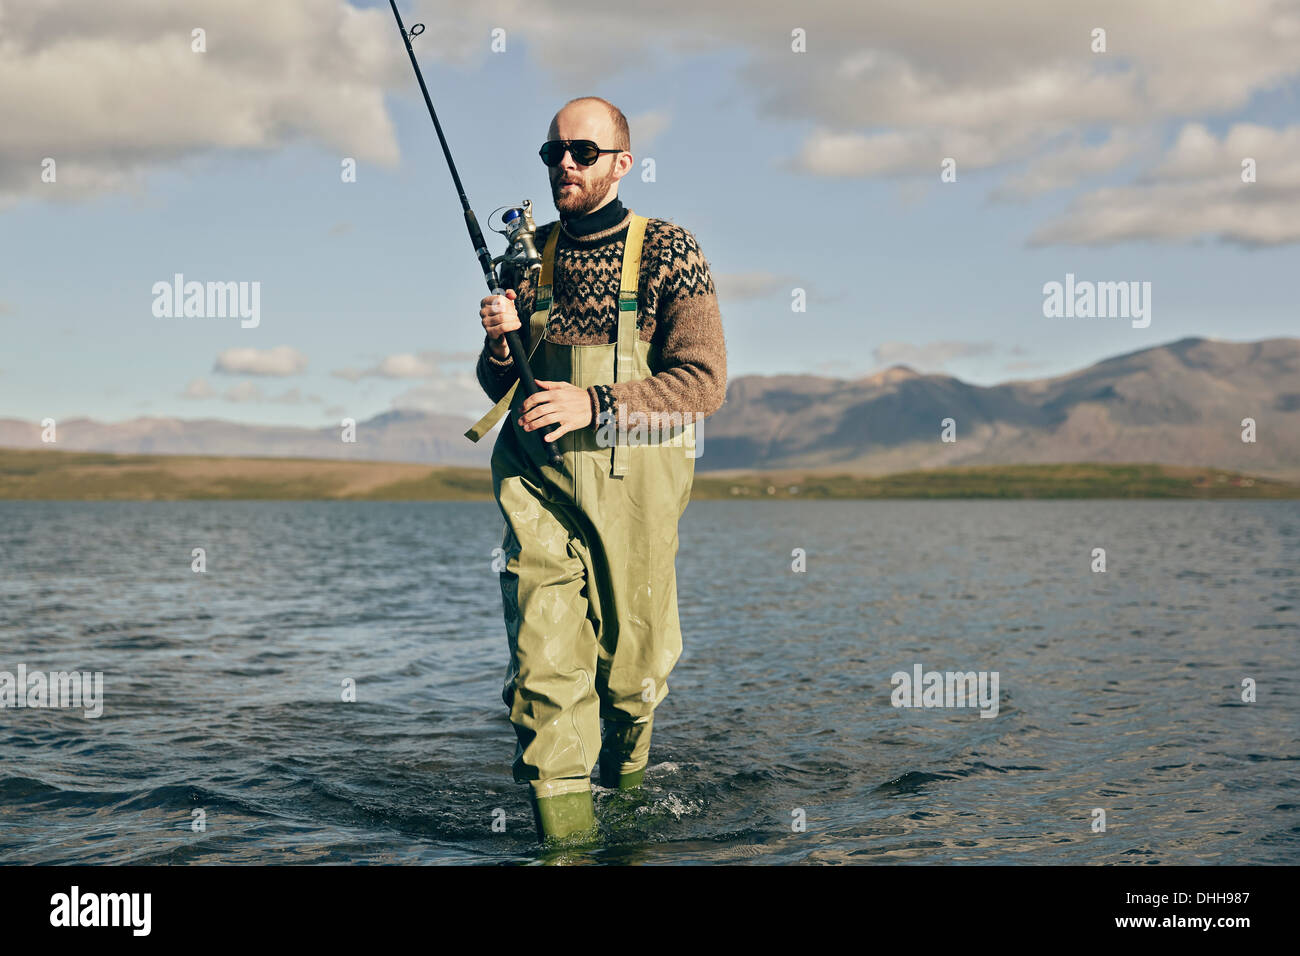 Man fishing - Stock Image